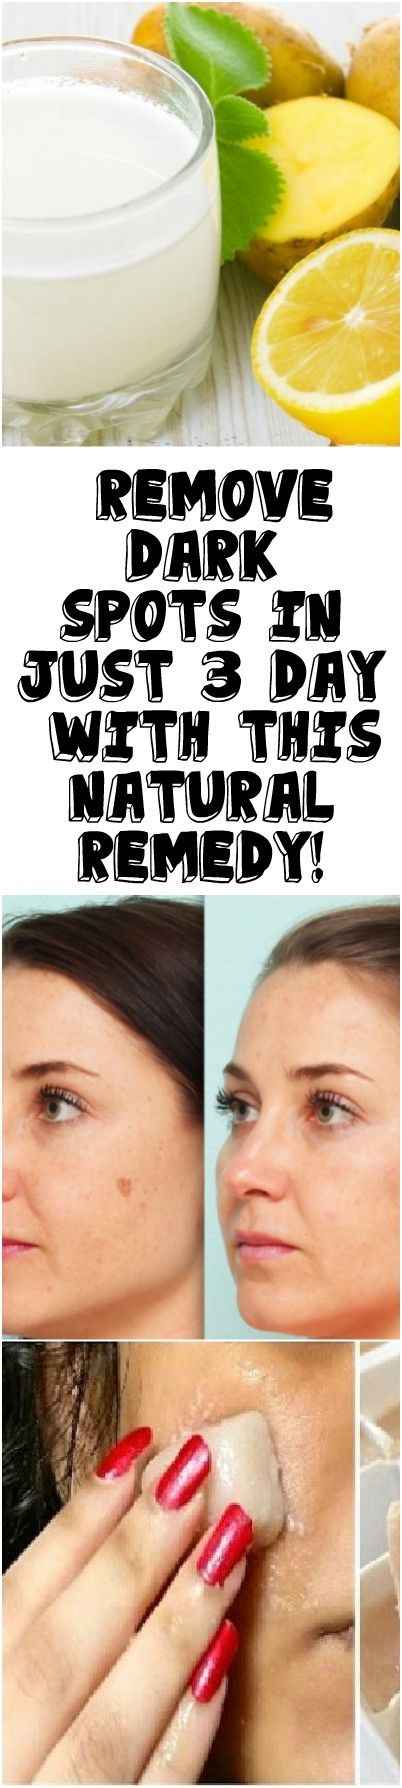 REMOVE DARK SPOTS IN JUST 3 DAY WITH THIS NATURAL REMEDY!